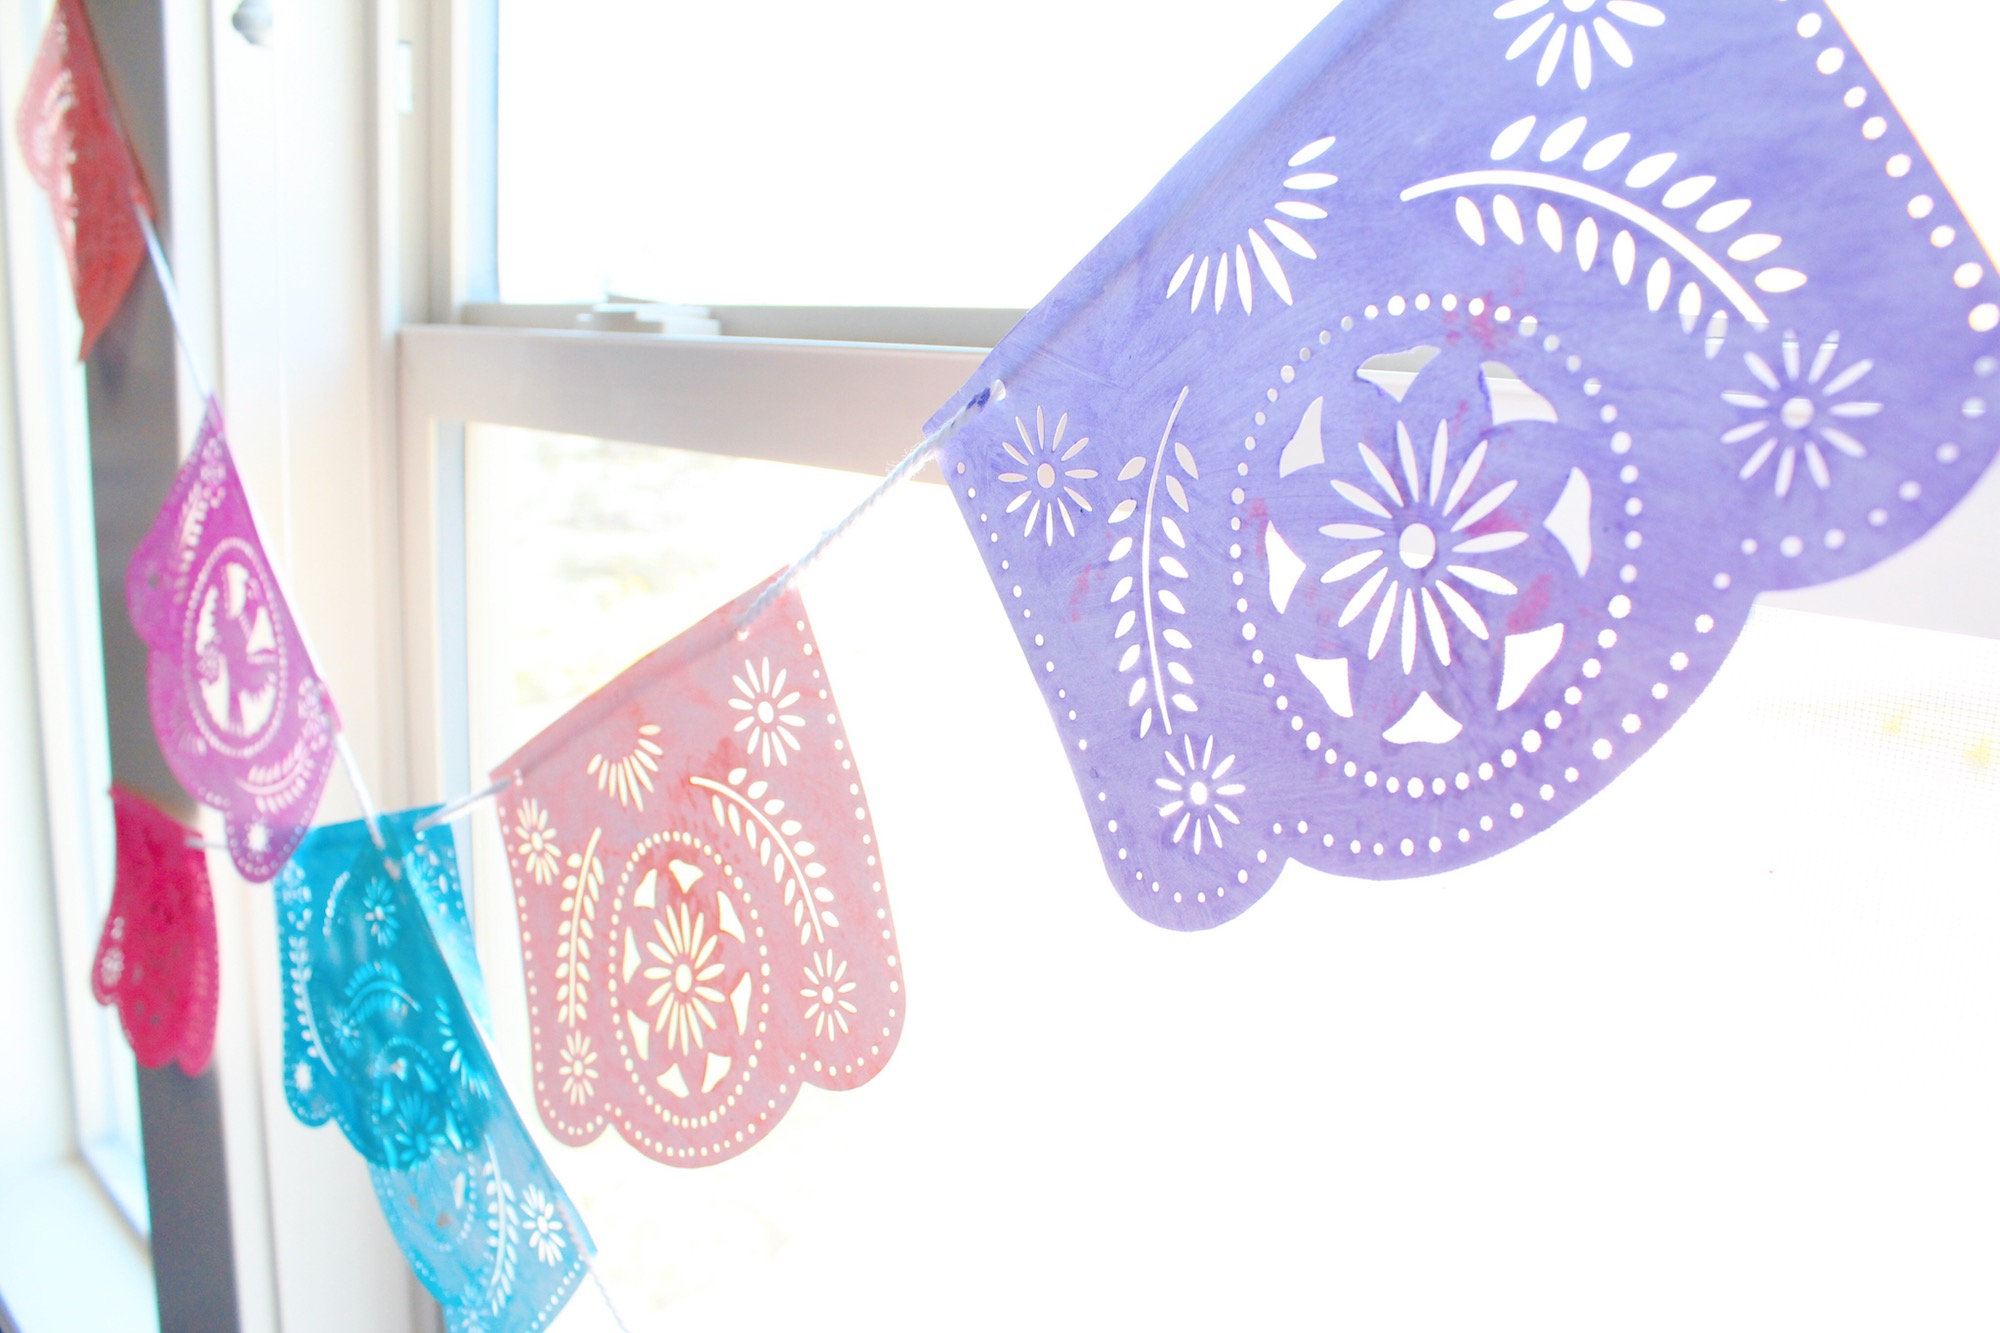 Cinco de Mayo Fiesta Decor_Papel Picado Banner_Design Organize Party.JPG